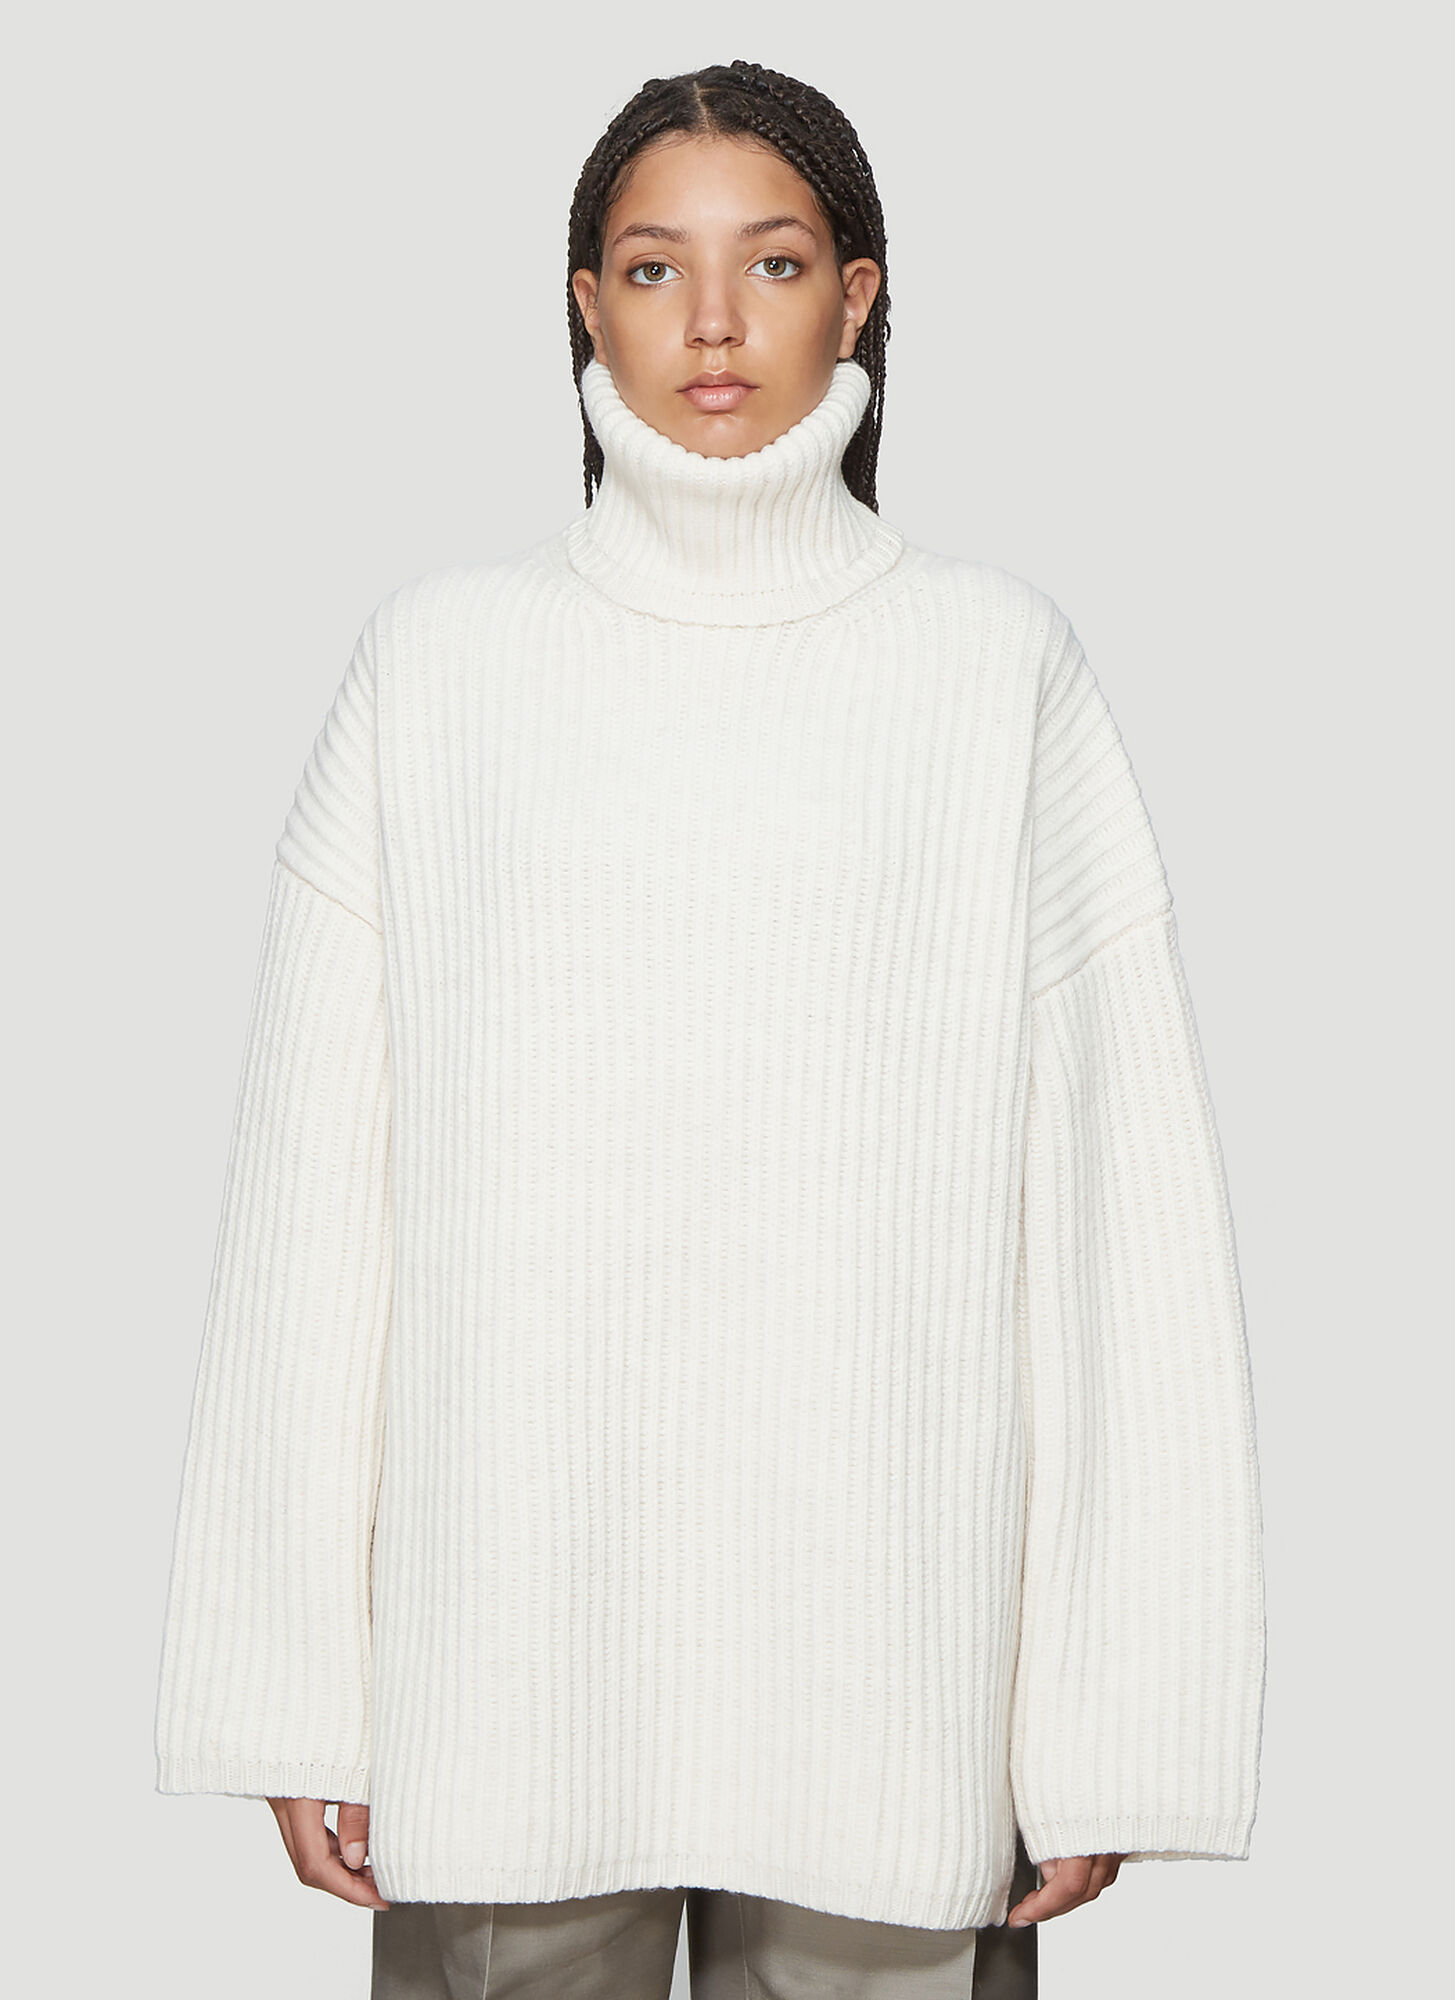 Acne Studios LX2 New Disa Sweater in White